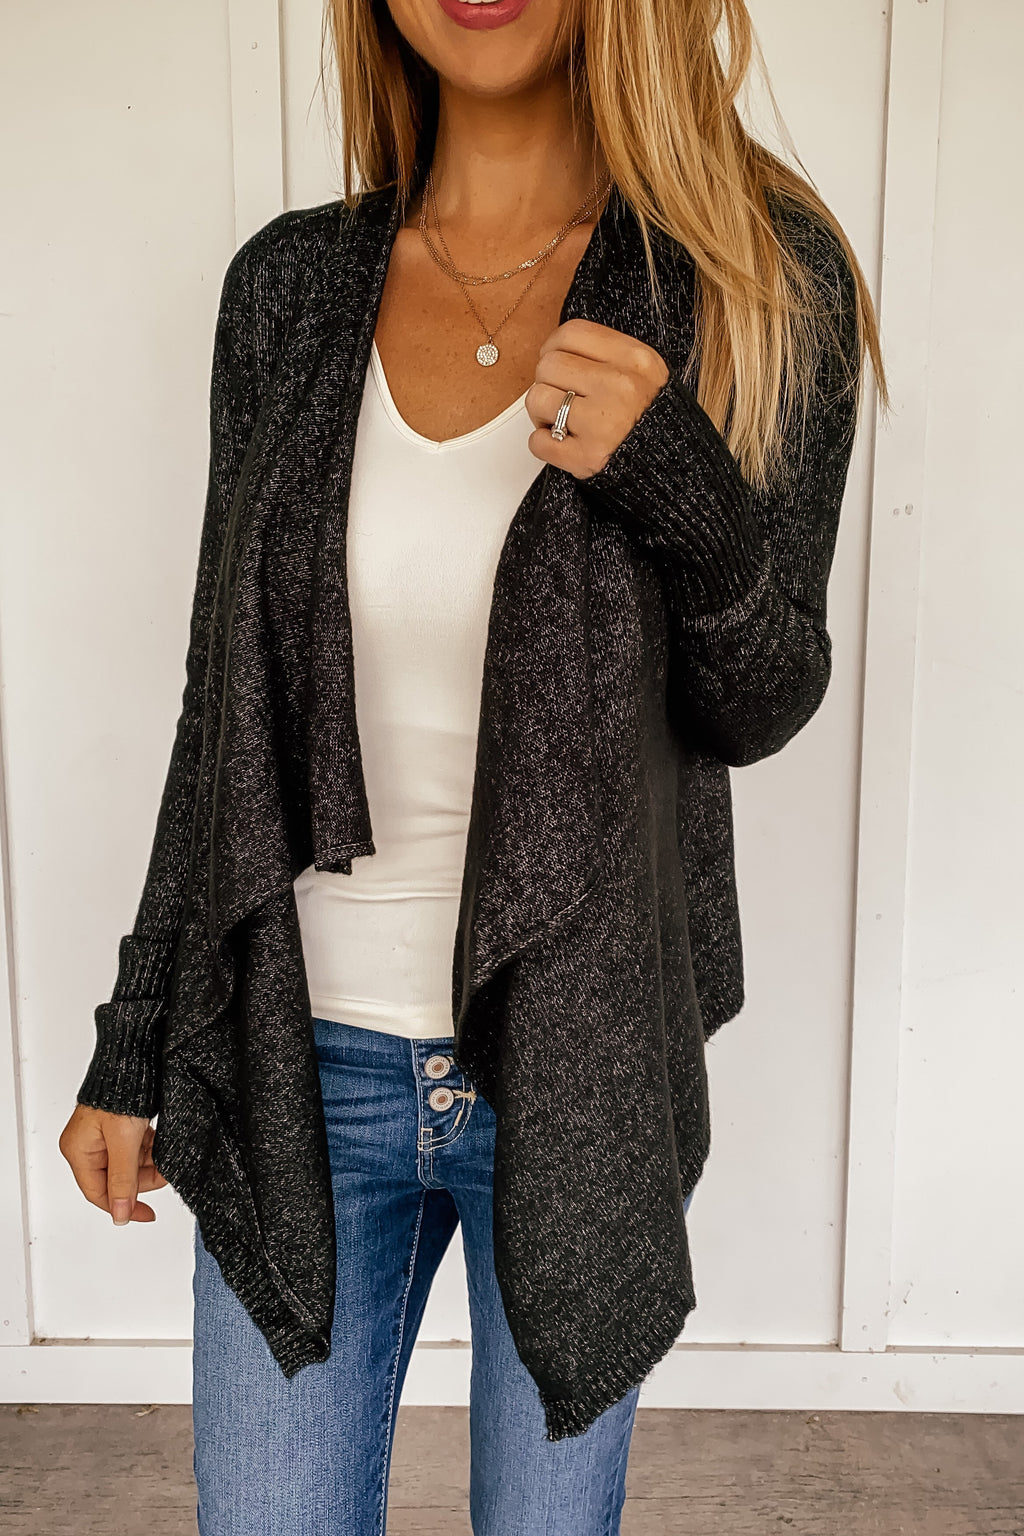 Midtown Open Cardigan in Heather Black - LURE Boutique